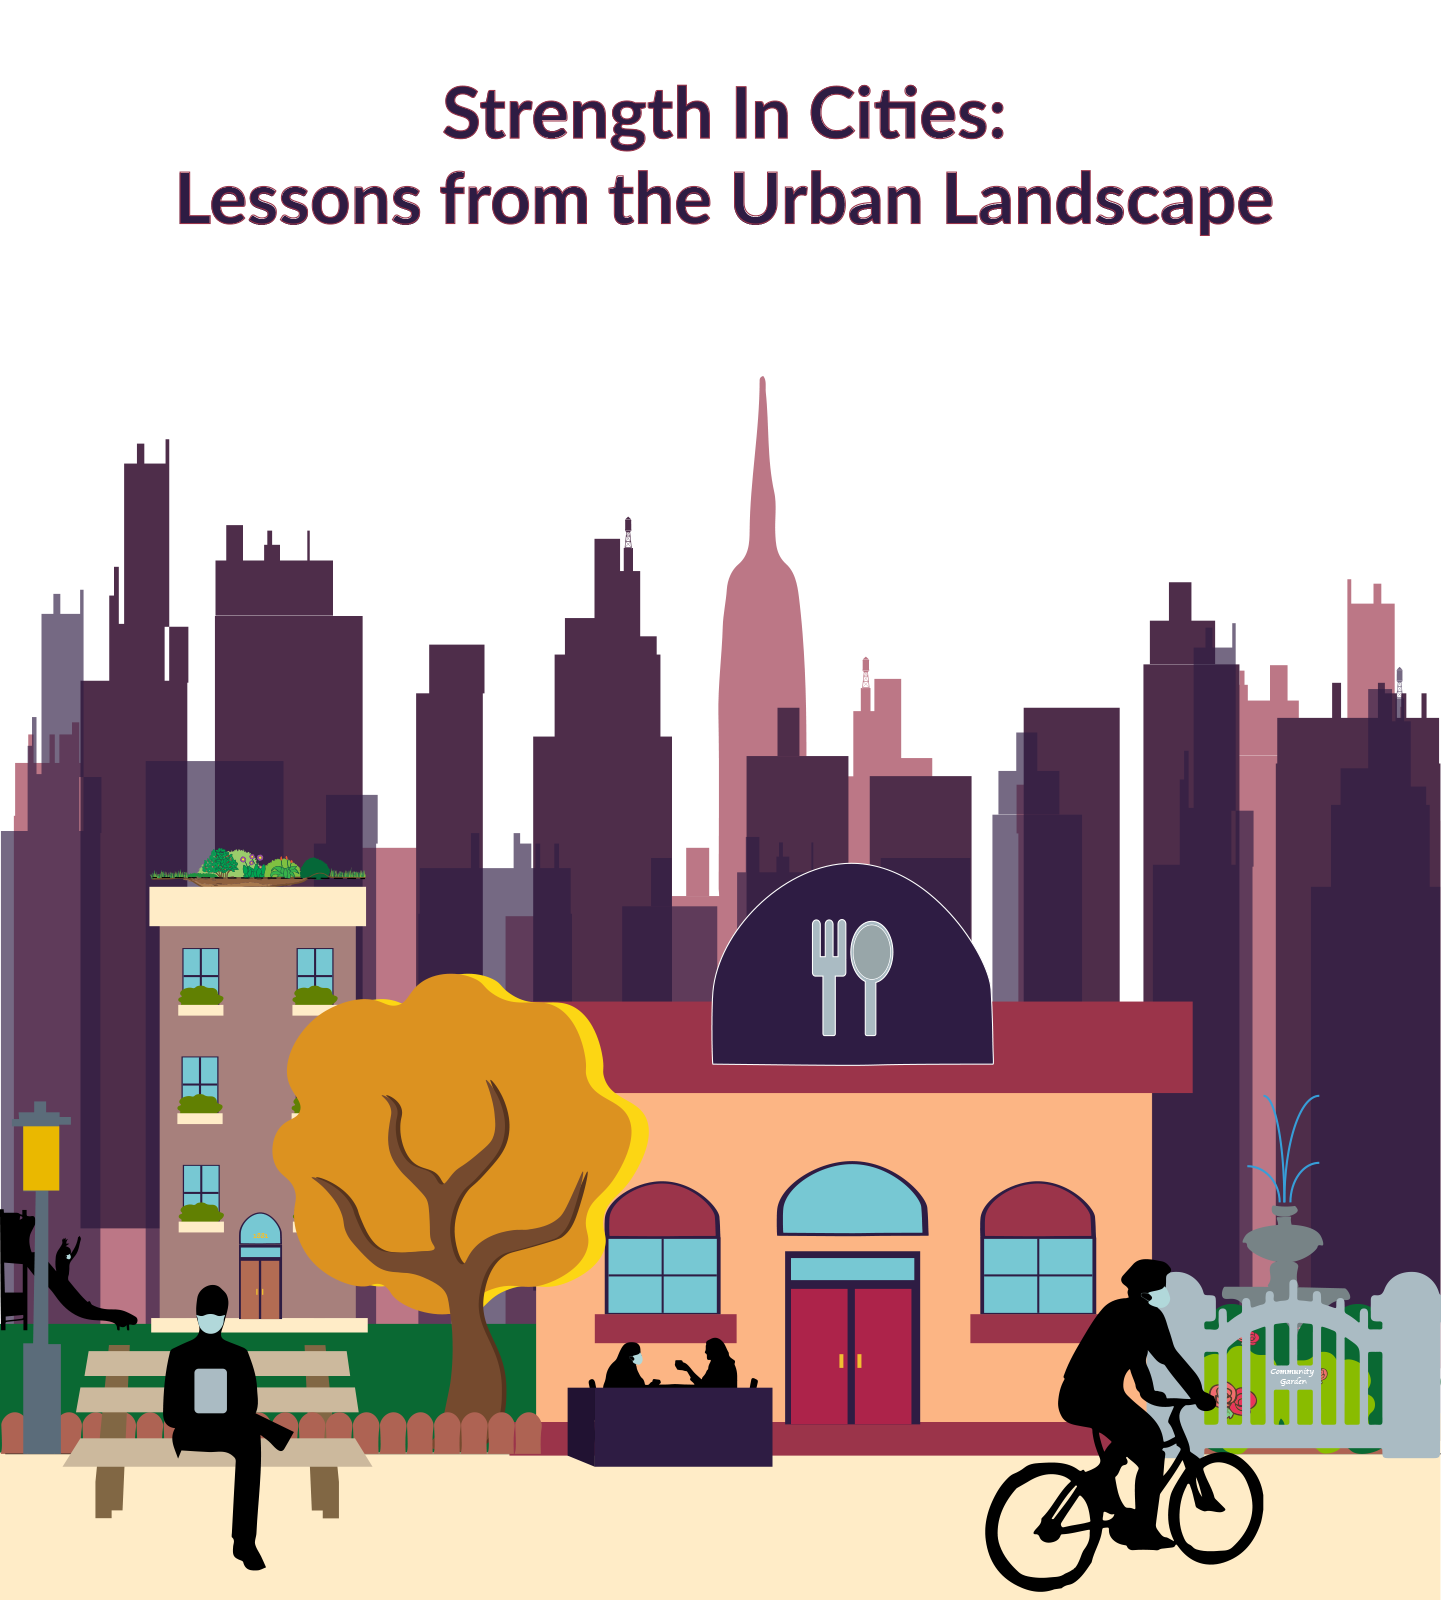 Interchanging Urban City Landscapes in New York,London, Beijing, Mexico City.